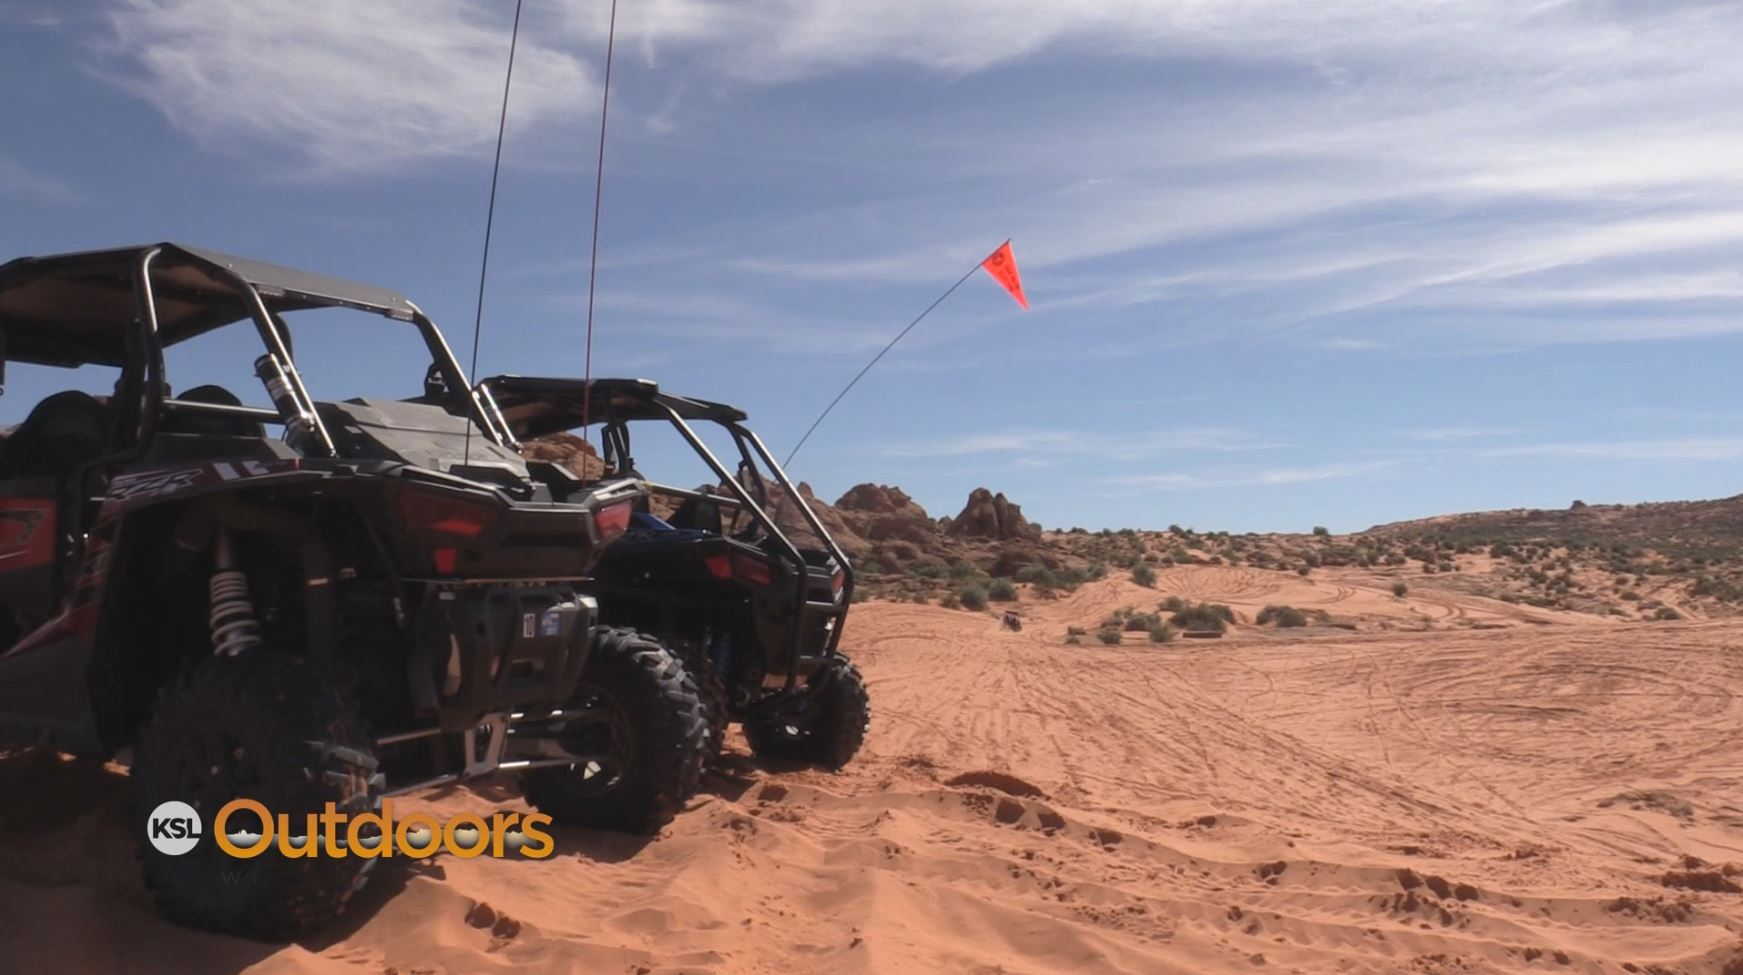 Ksl outdoors 4 wheeling at sand hollow for Sand hollow fishing report